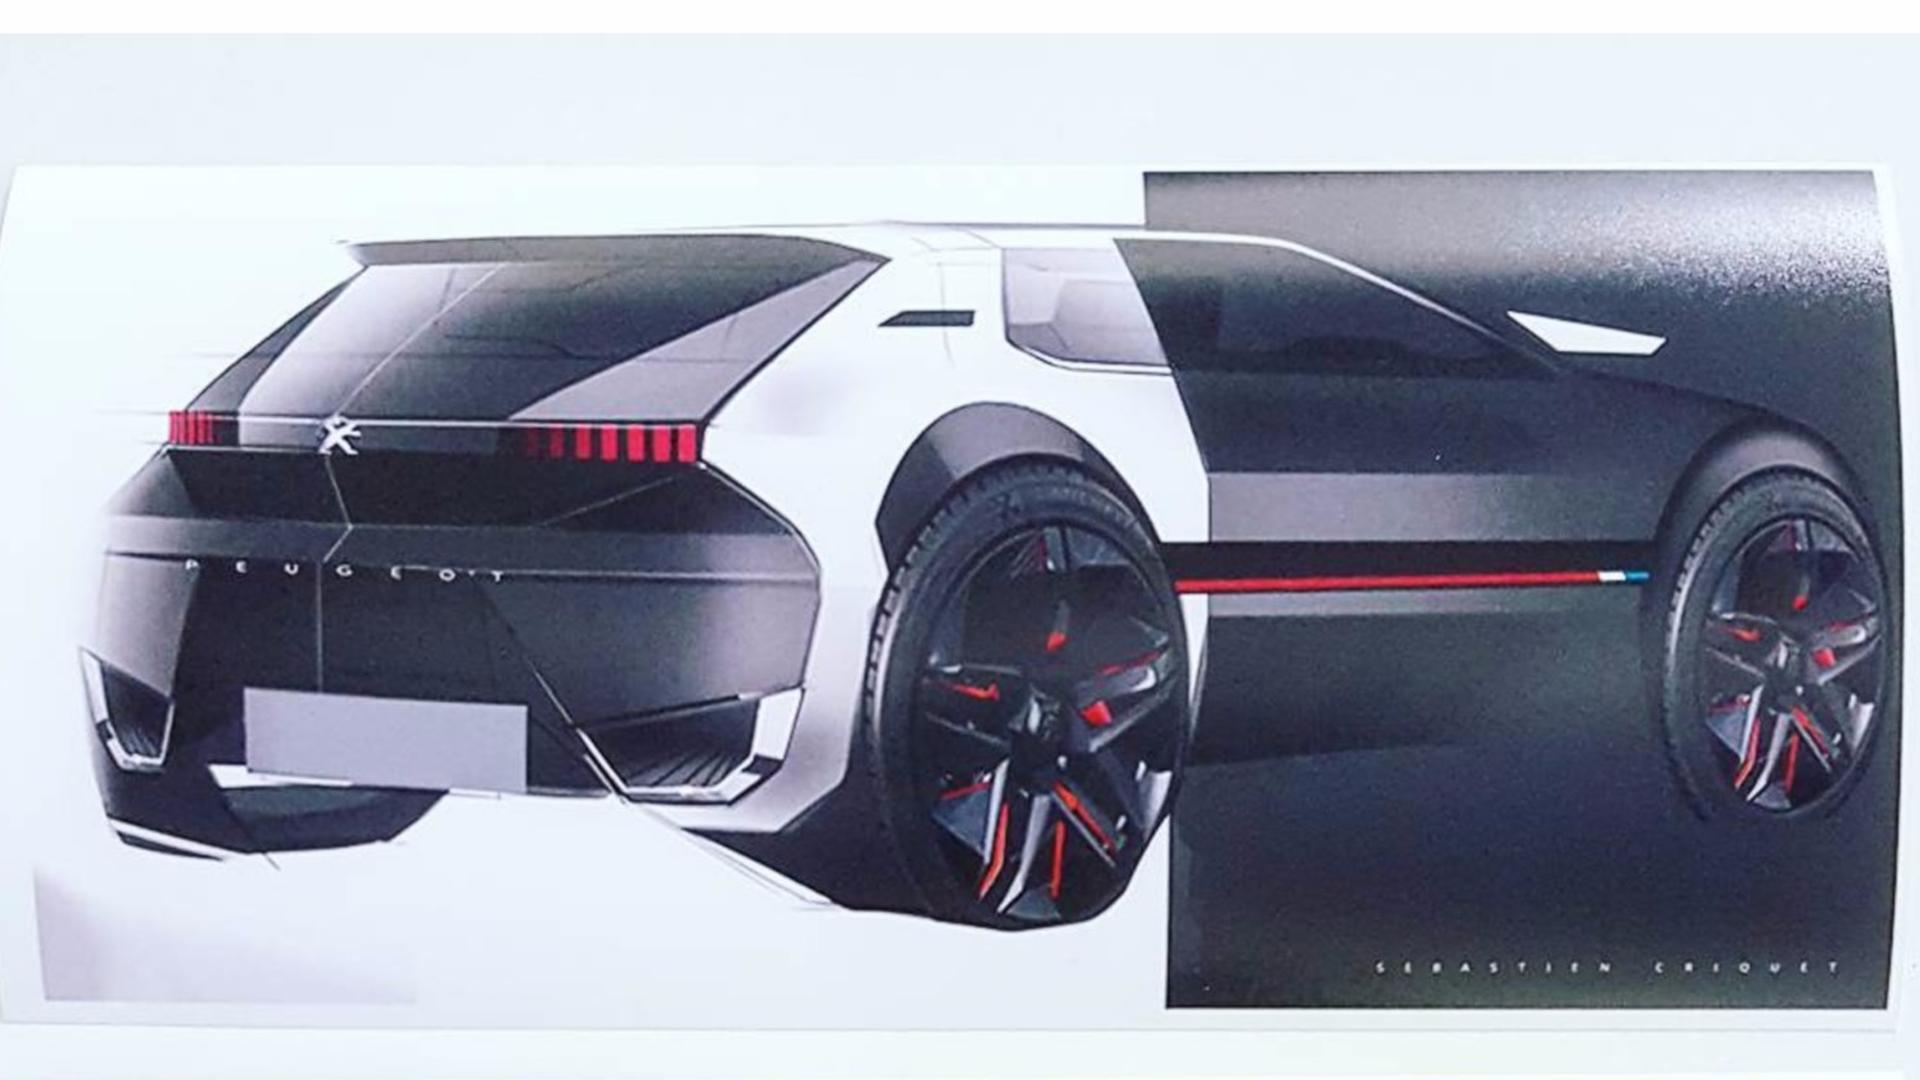 Peugeot 205 GTI Sketches (3)